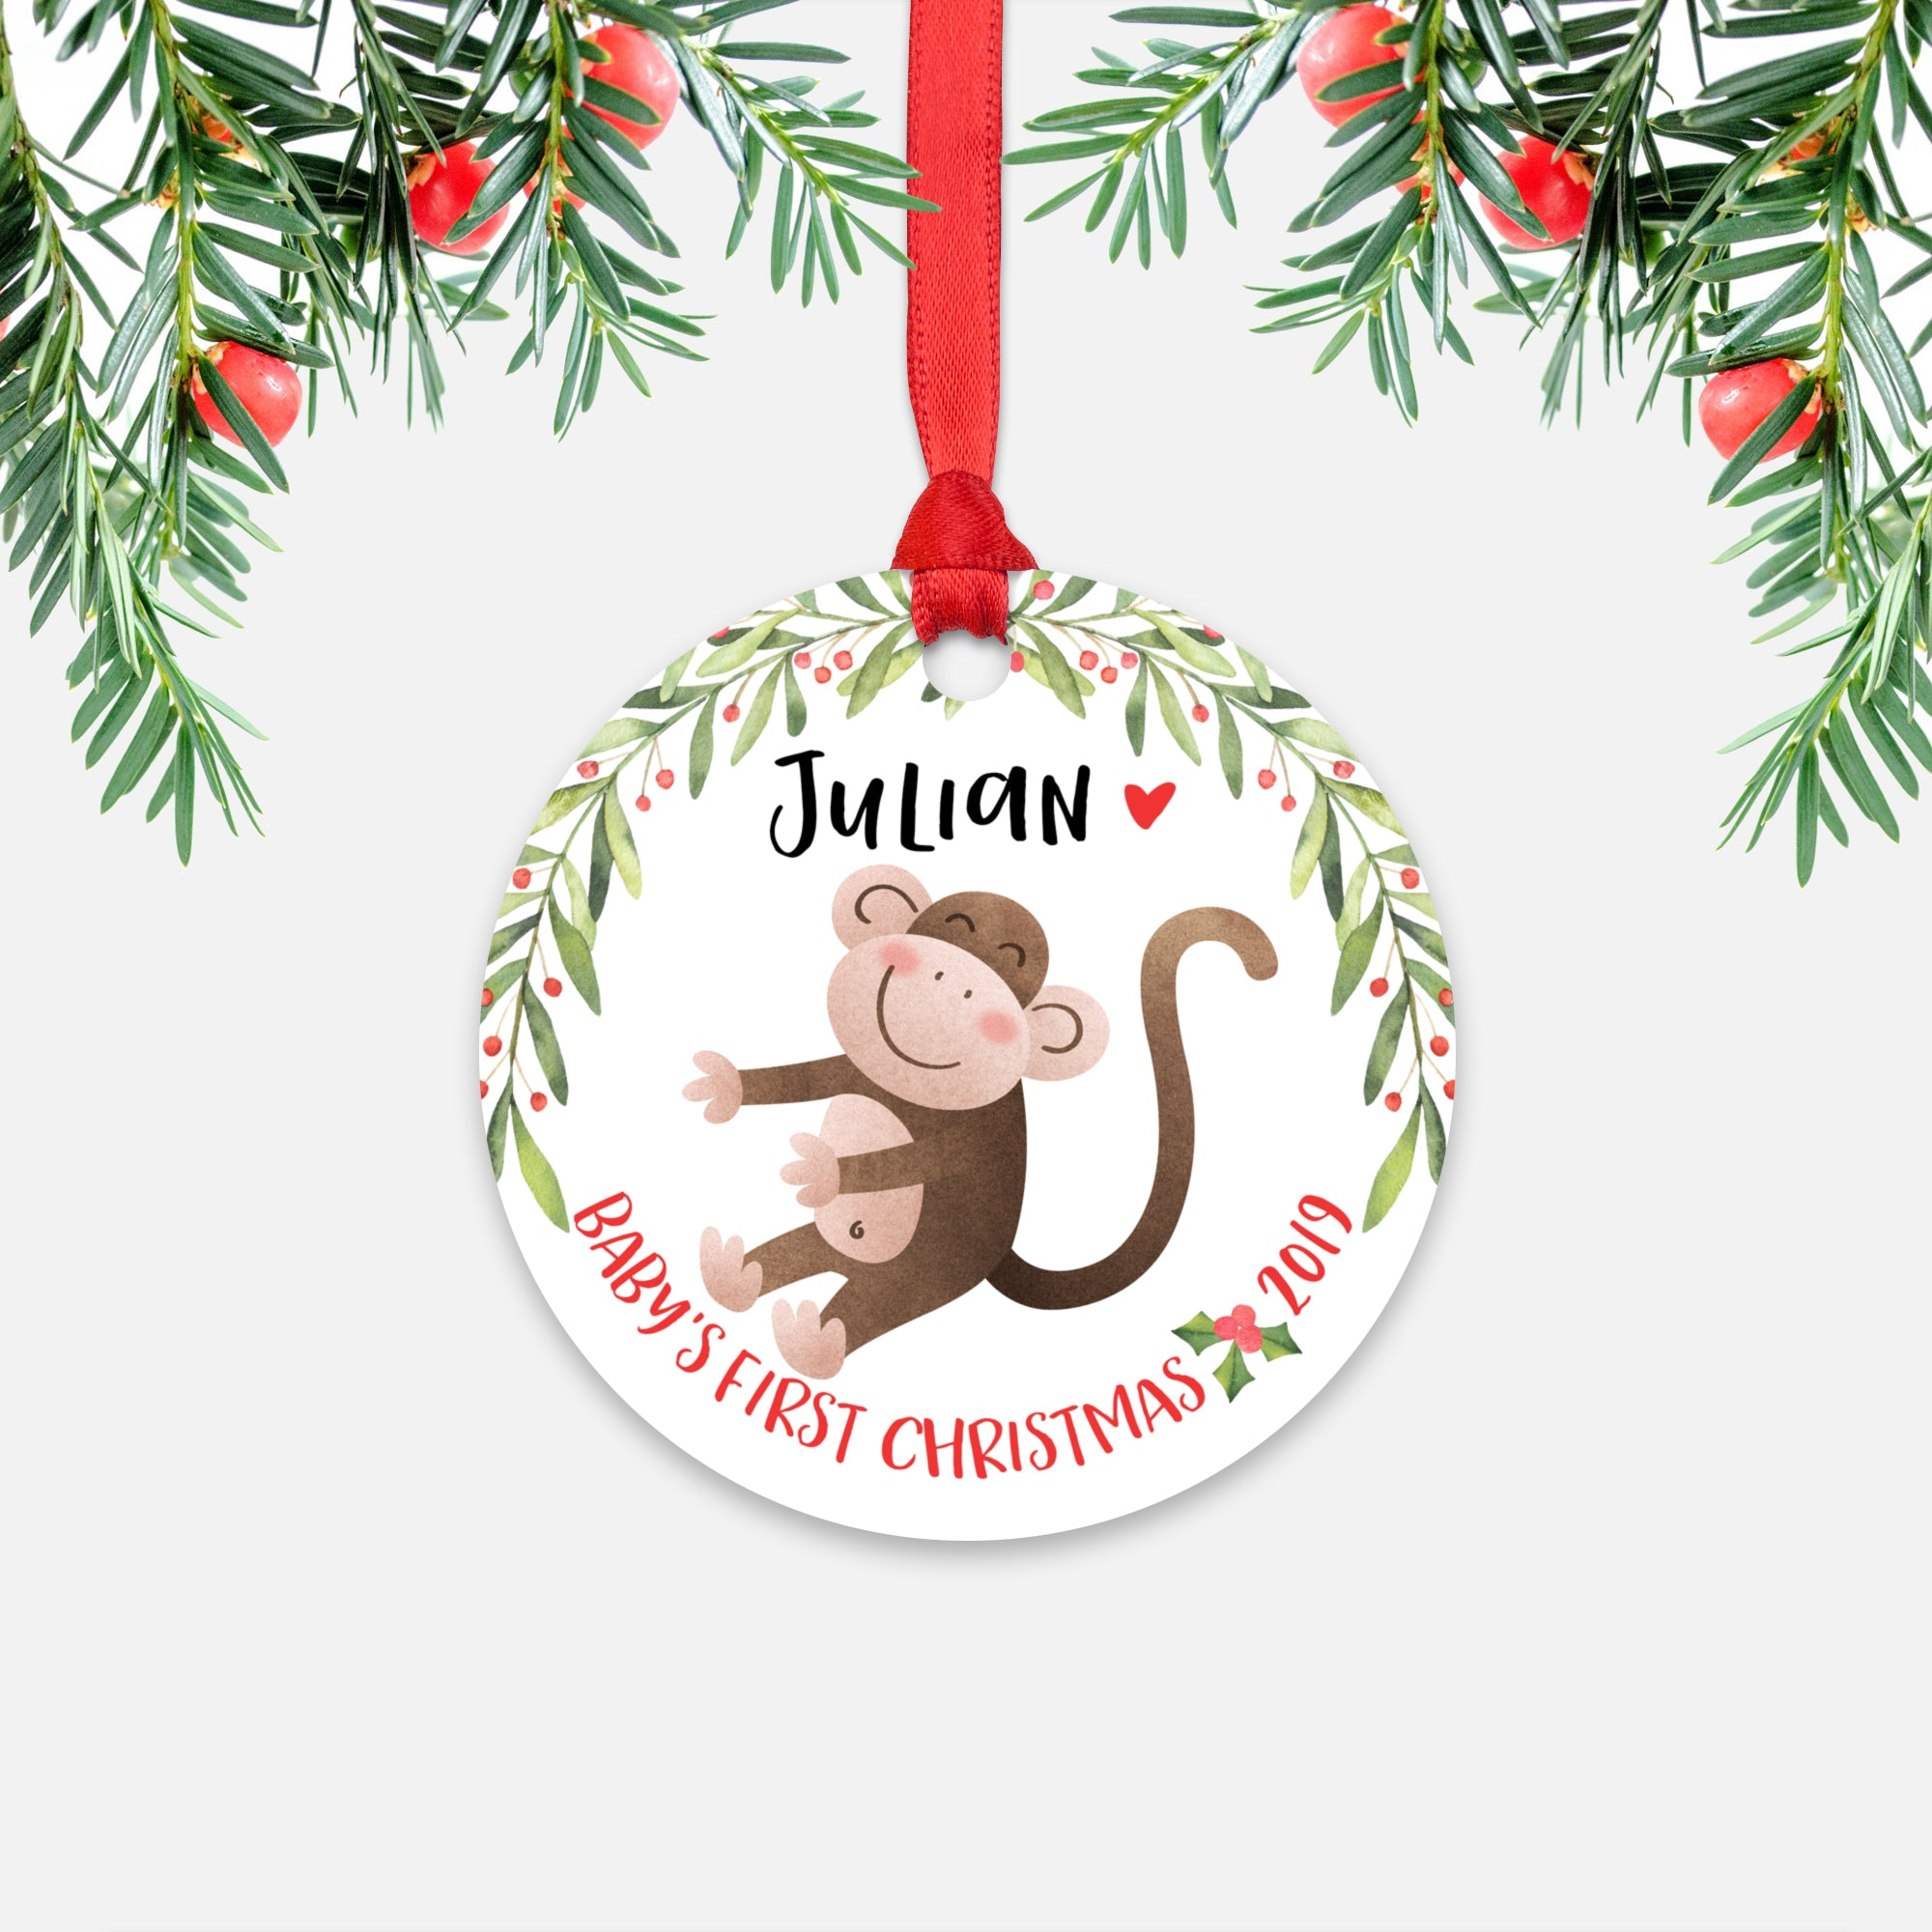 Monkey Personalized Baby's First Christmas Ornament for Baby Boy or Baby Girl - Cute Jungle Animal Baby 1st Holidays Decoration - Custom Christmas Gift Idea for New Parents - Round Aluminum - by Happy Cat Prints